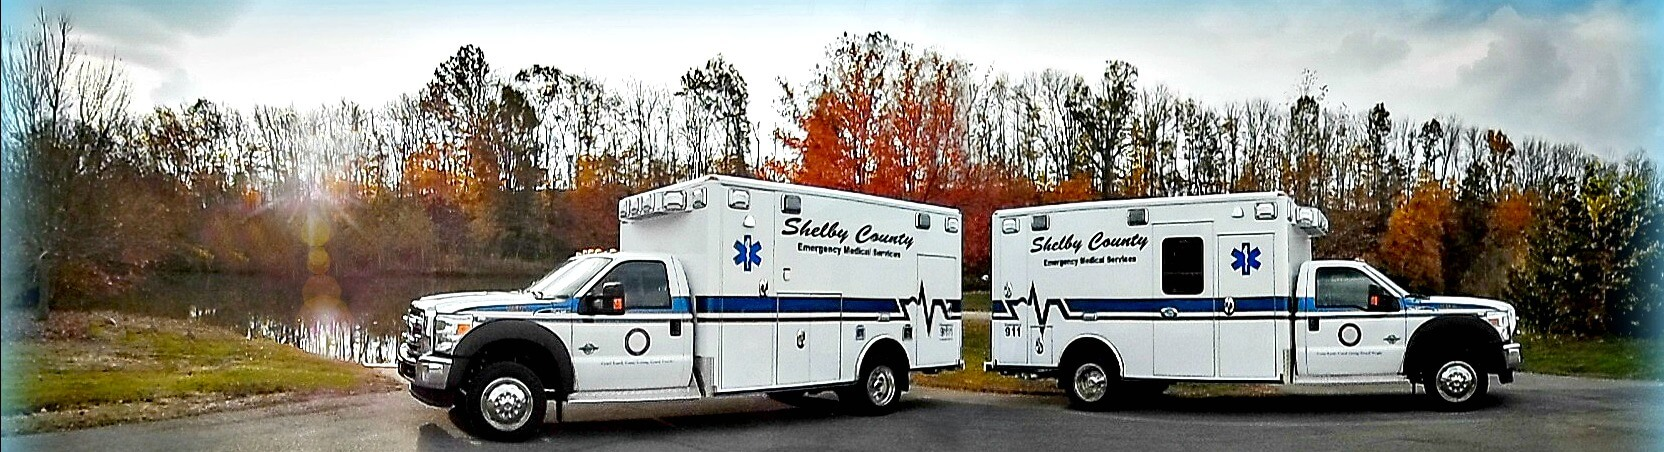 Shelby County EMS trucks